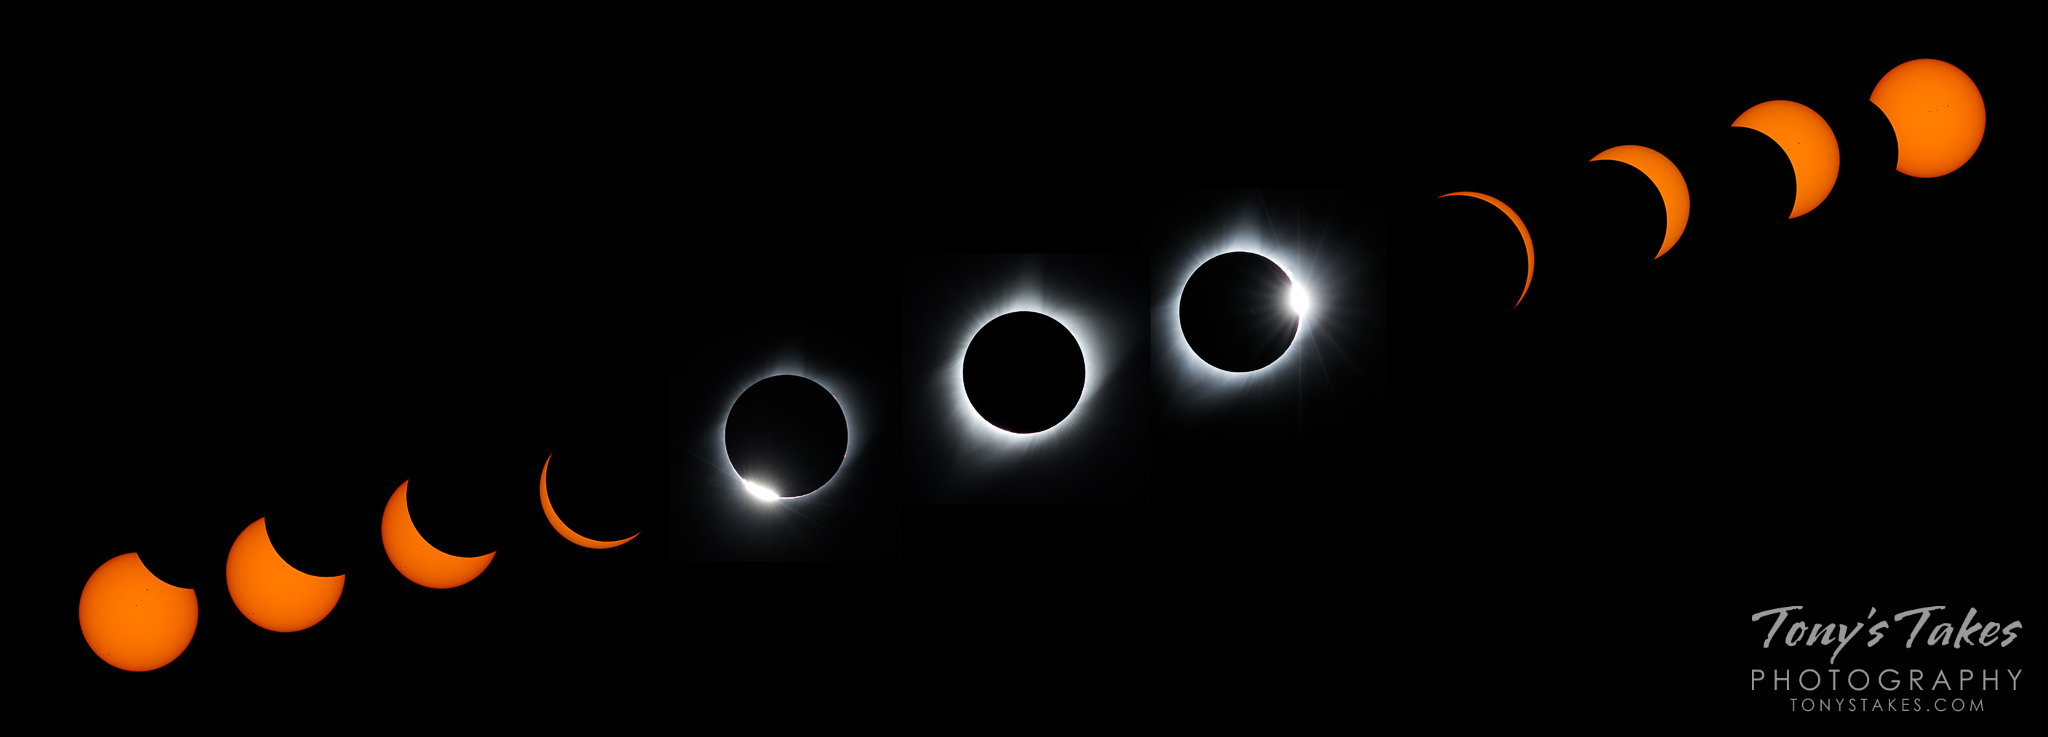 One year ago today: The Great American Eclipse